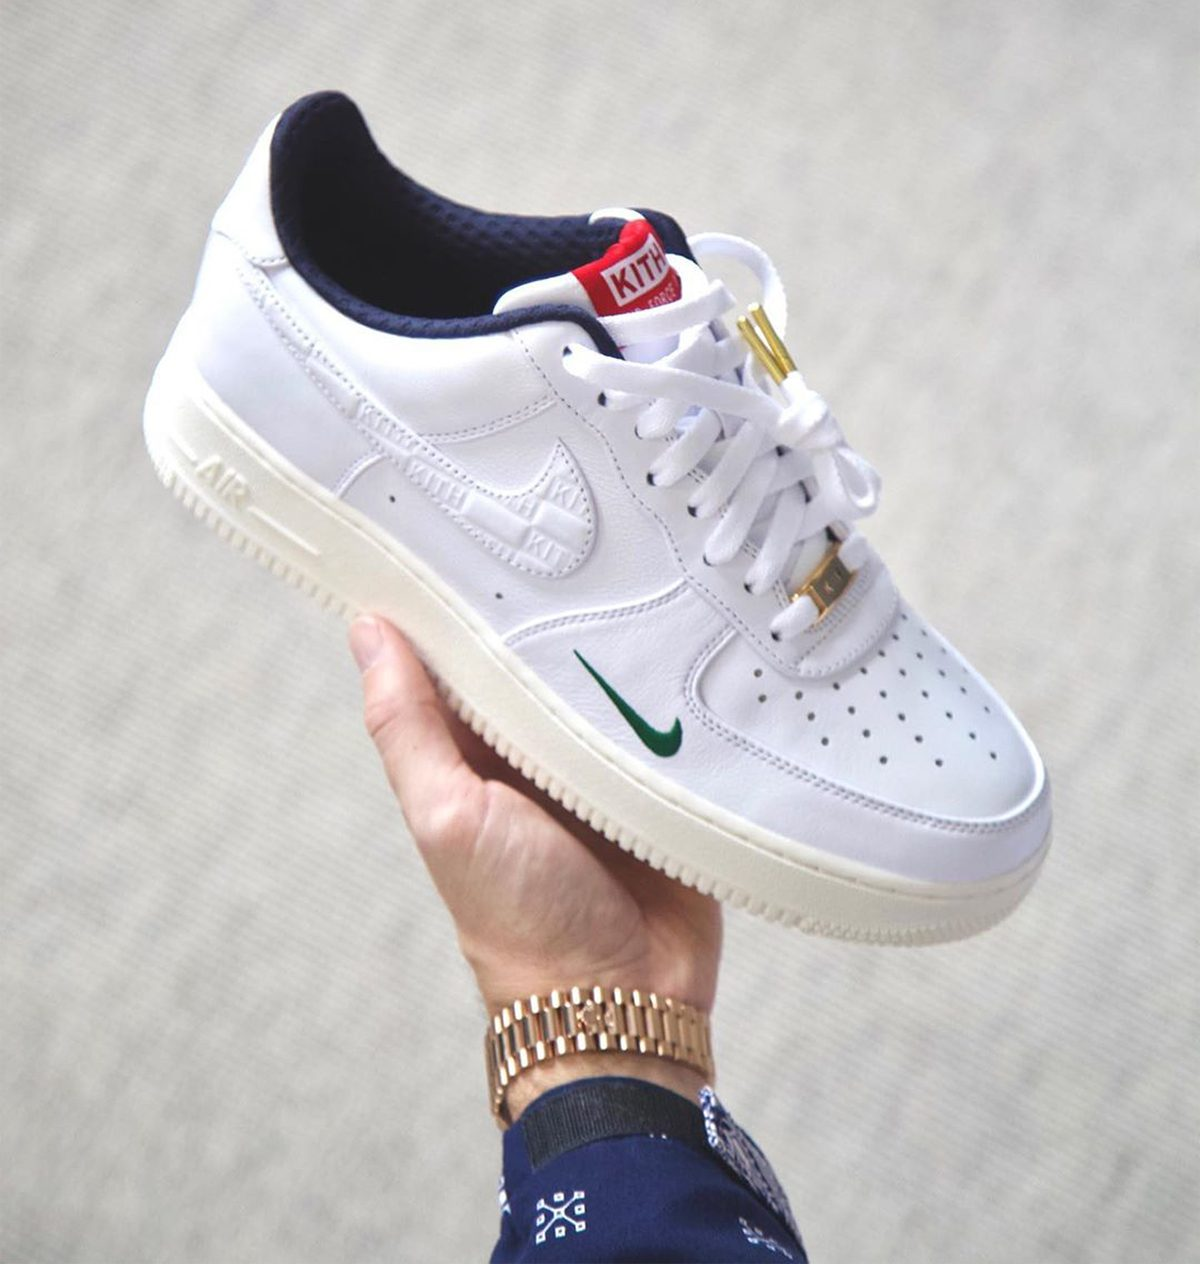 Another Look at the KITH x Nike Air Force 1 Low Collaboration